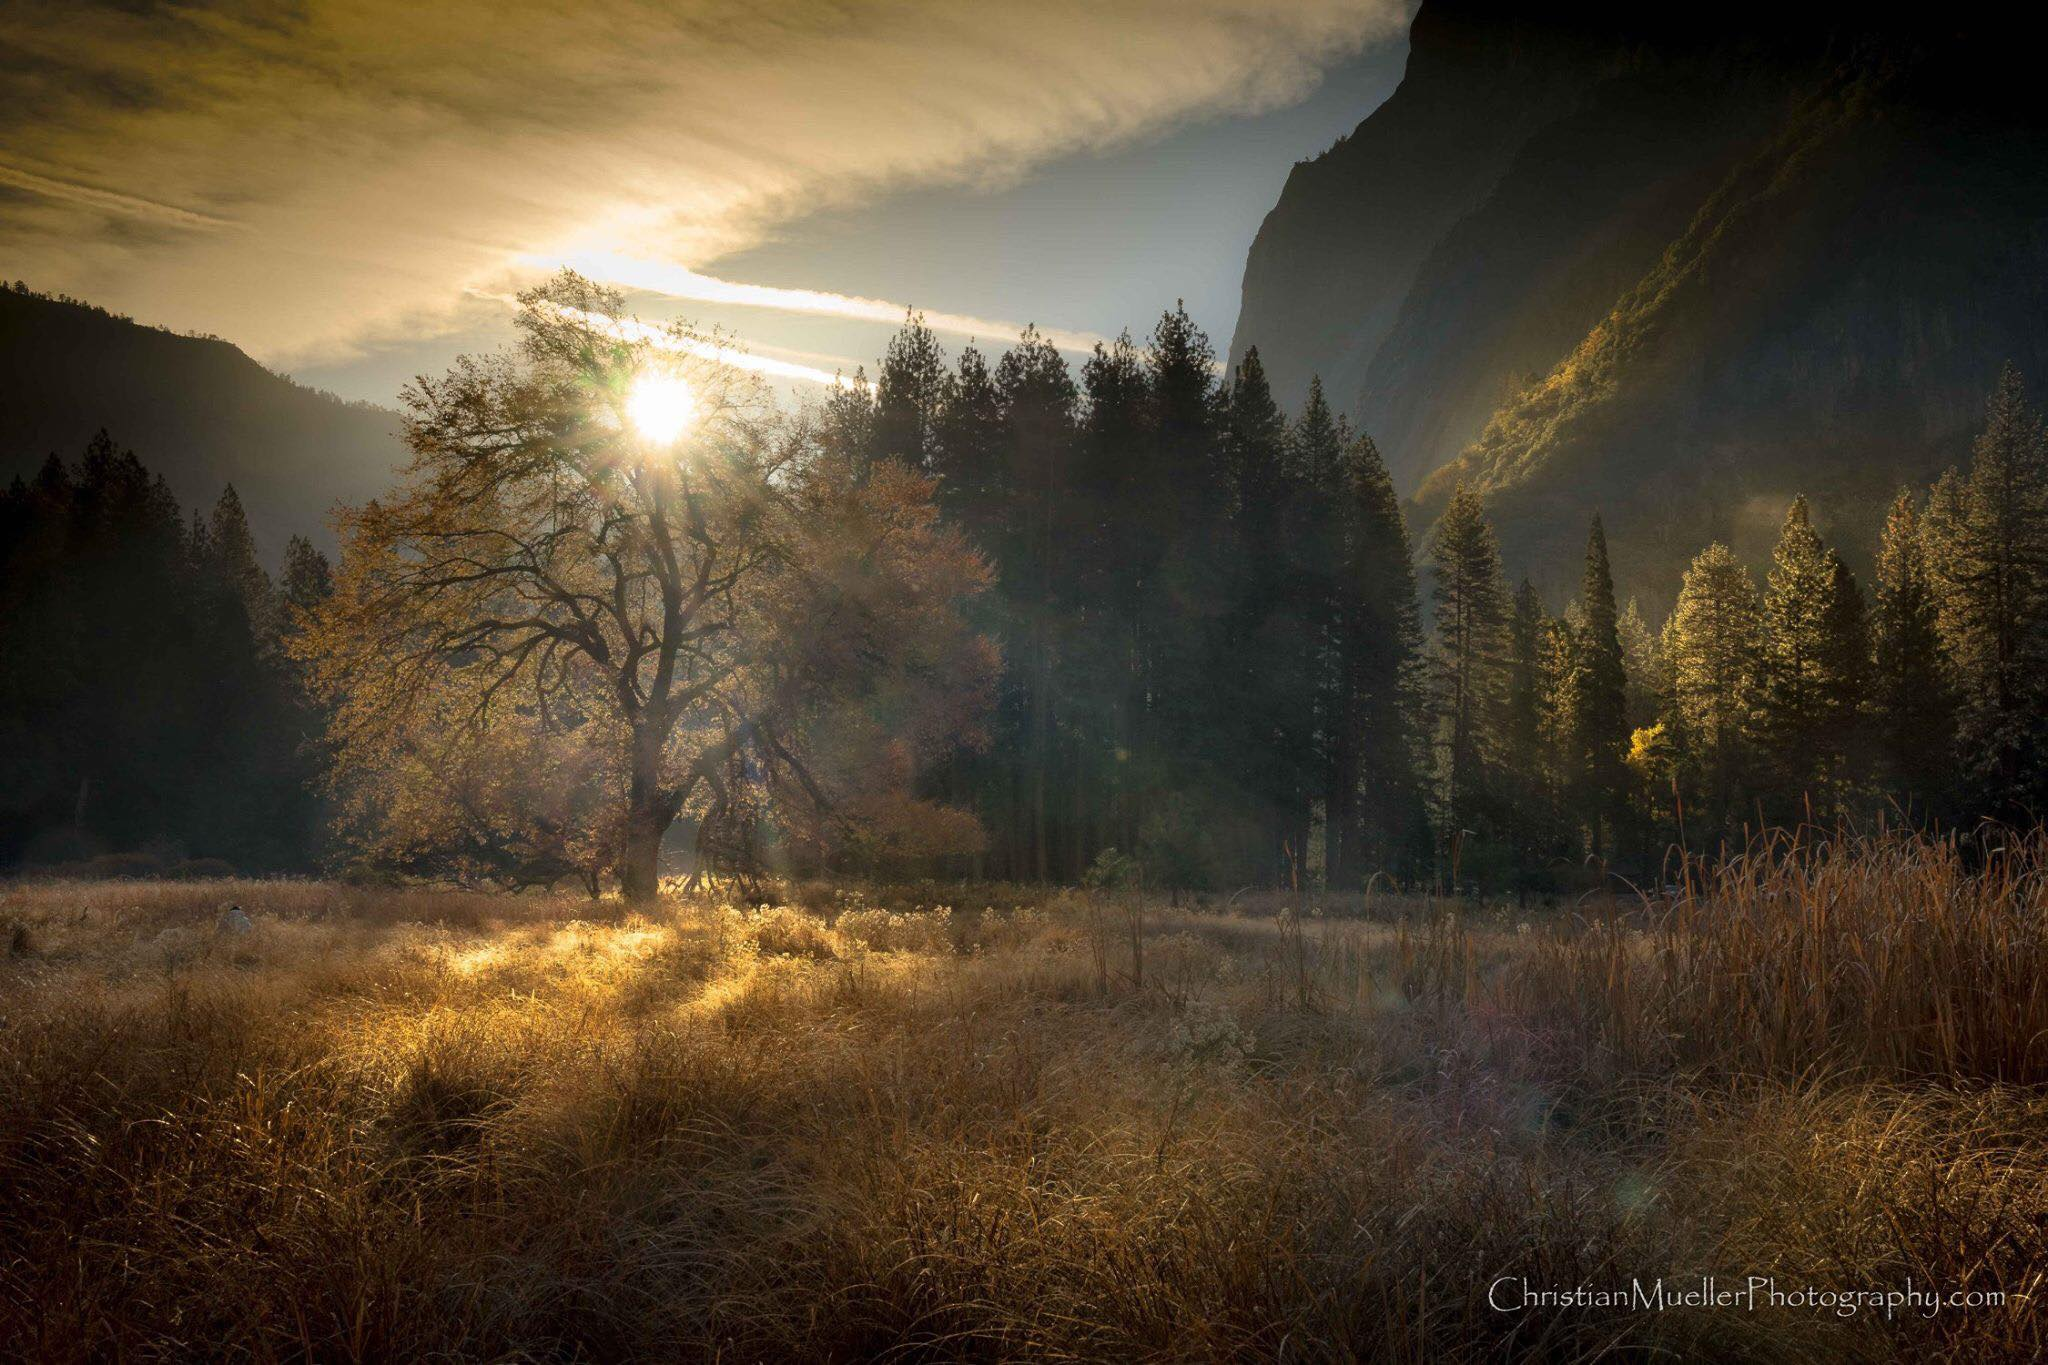 Early morning light at Yosemite's Cooks Meadow